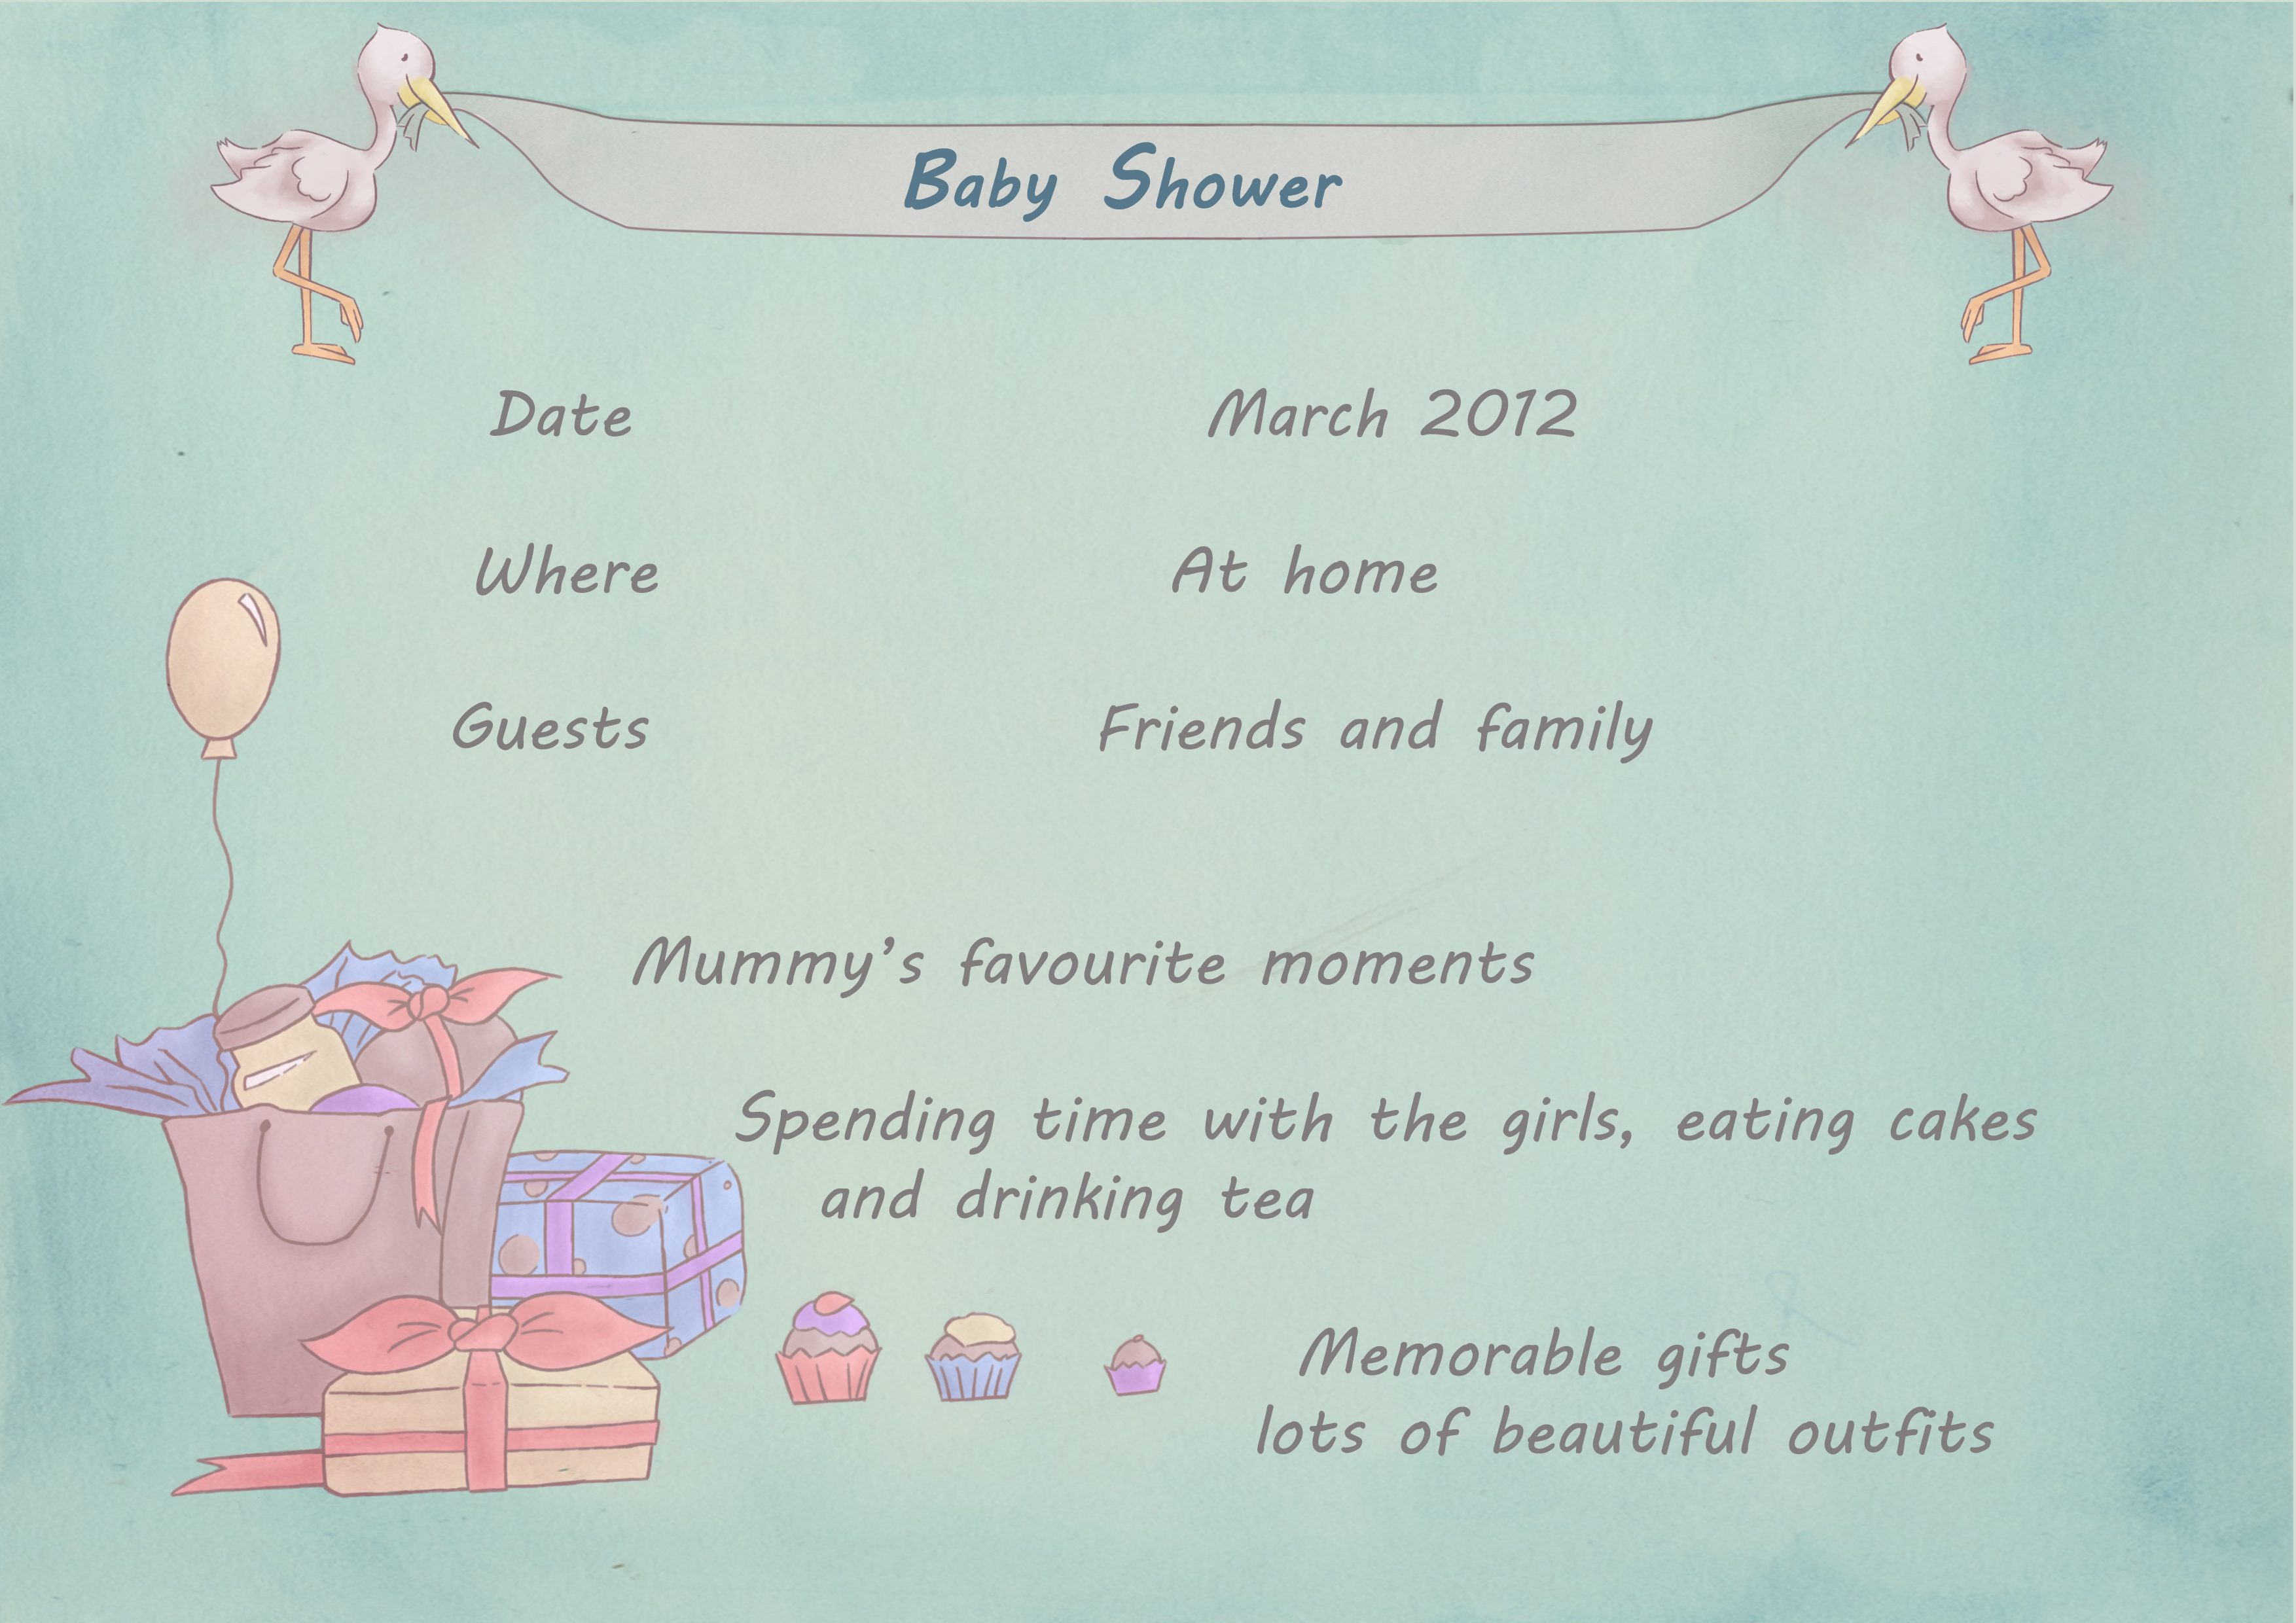 Baby Biography Baby Shower page